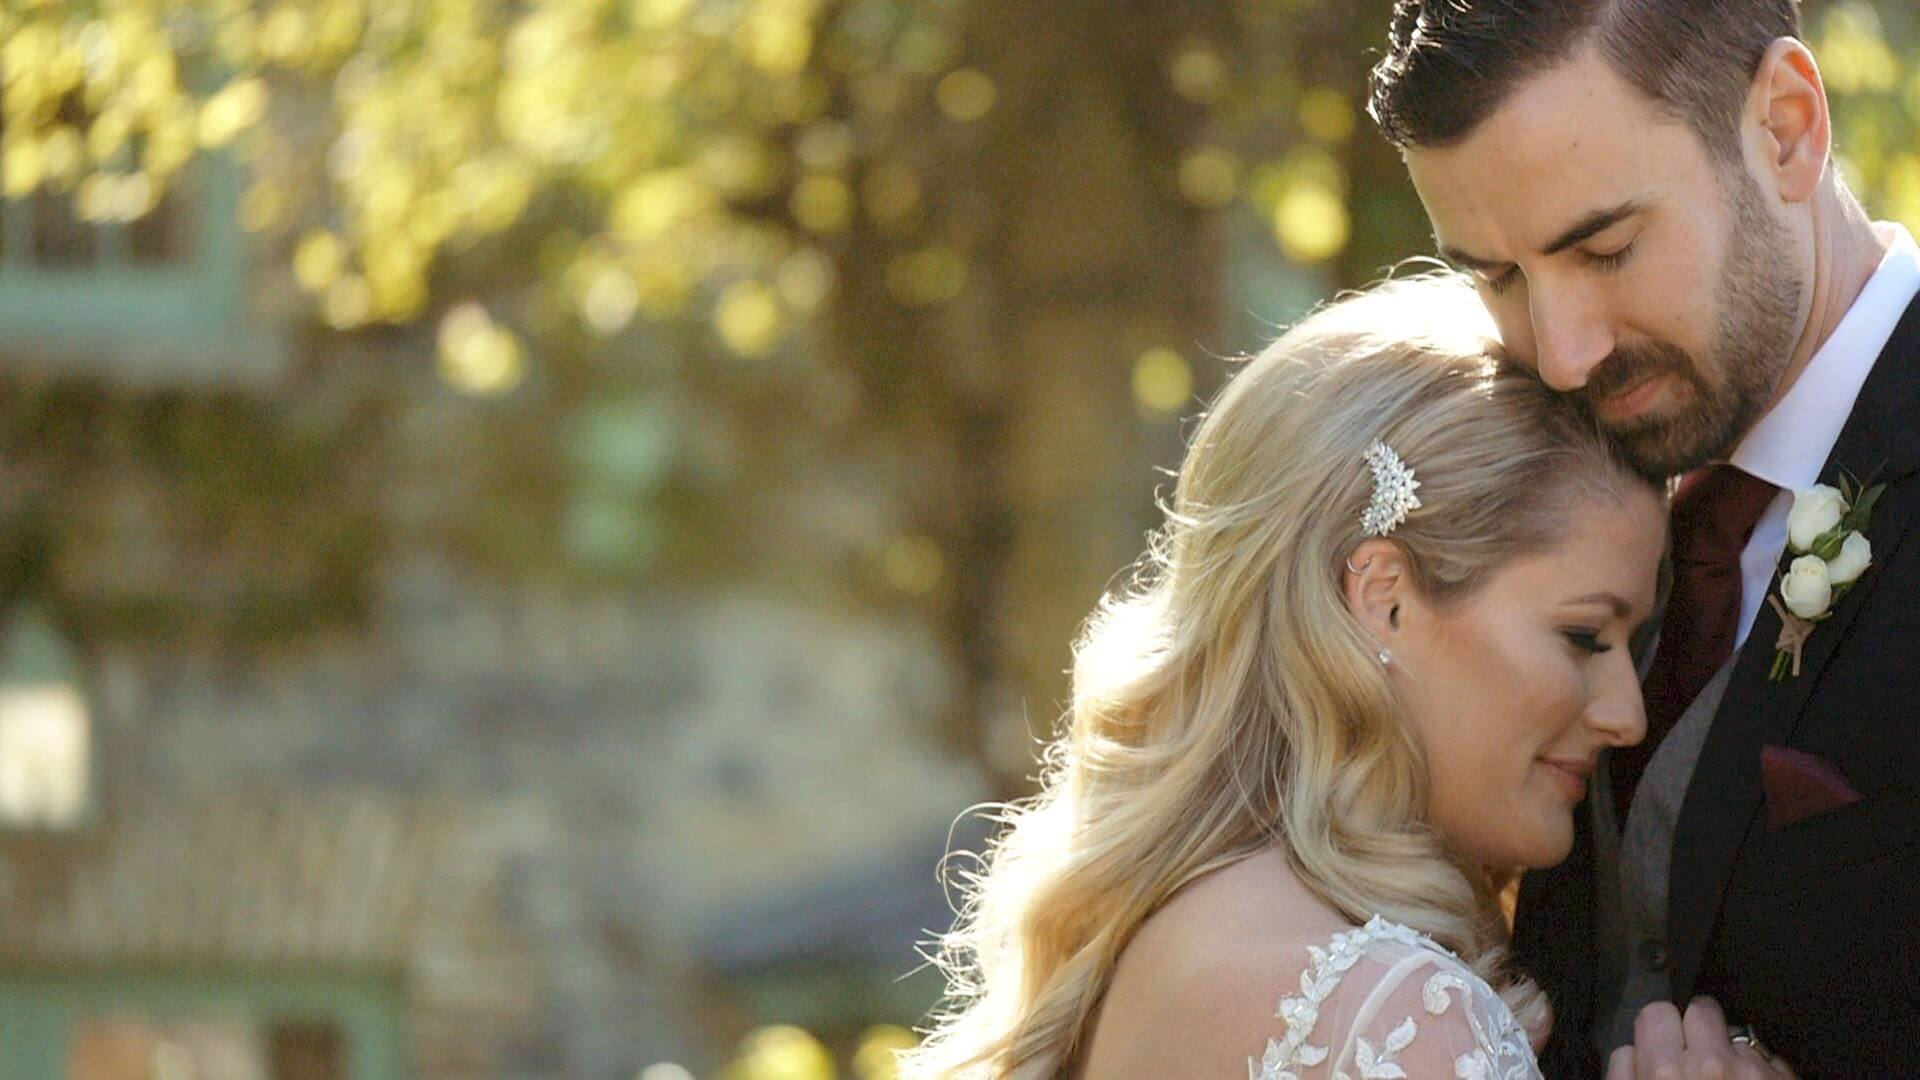 Audrey & Alex, Wedding Video at Cliff at Lyons